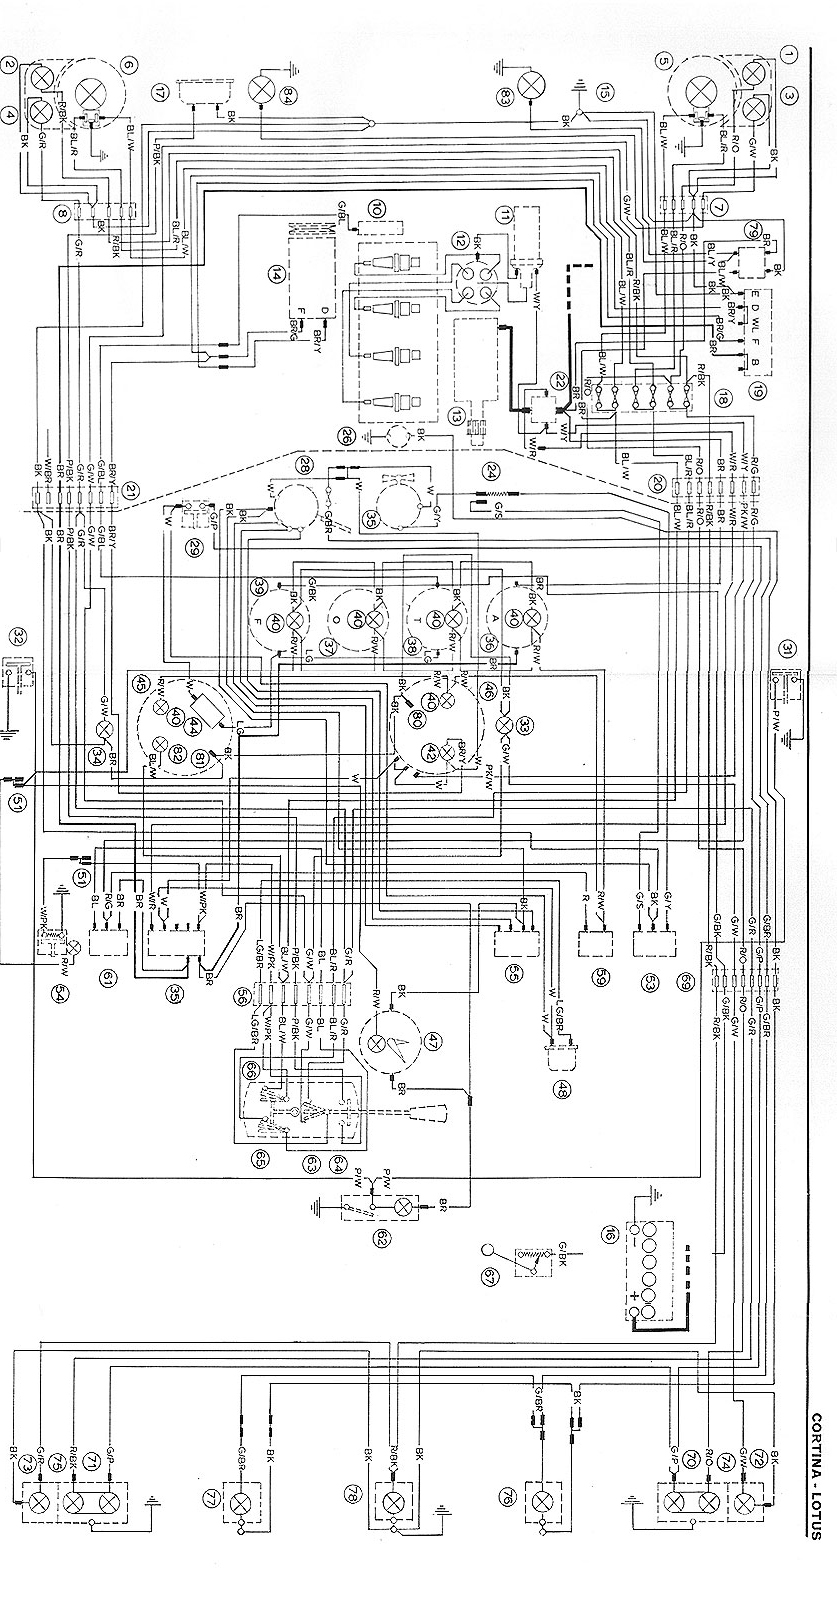 Ford Cortina Mk1 Wiring Diagram